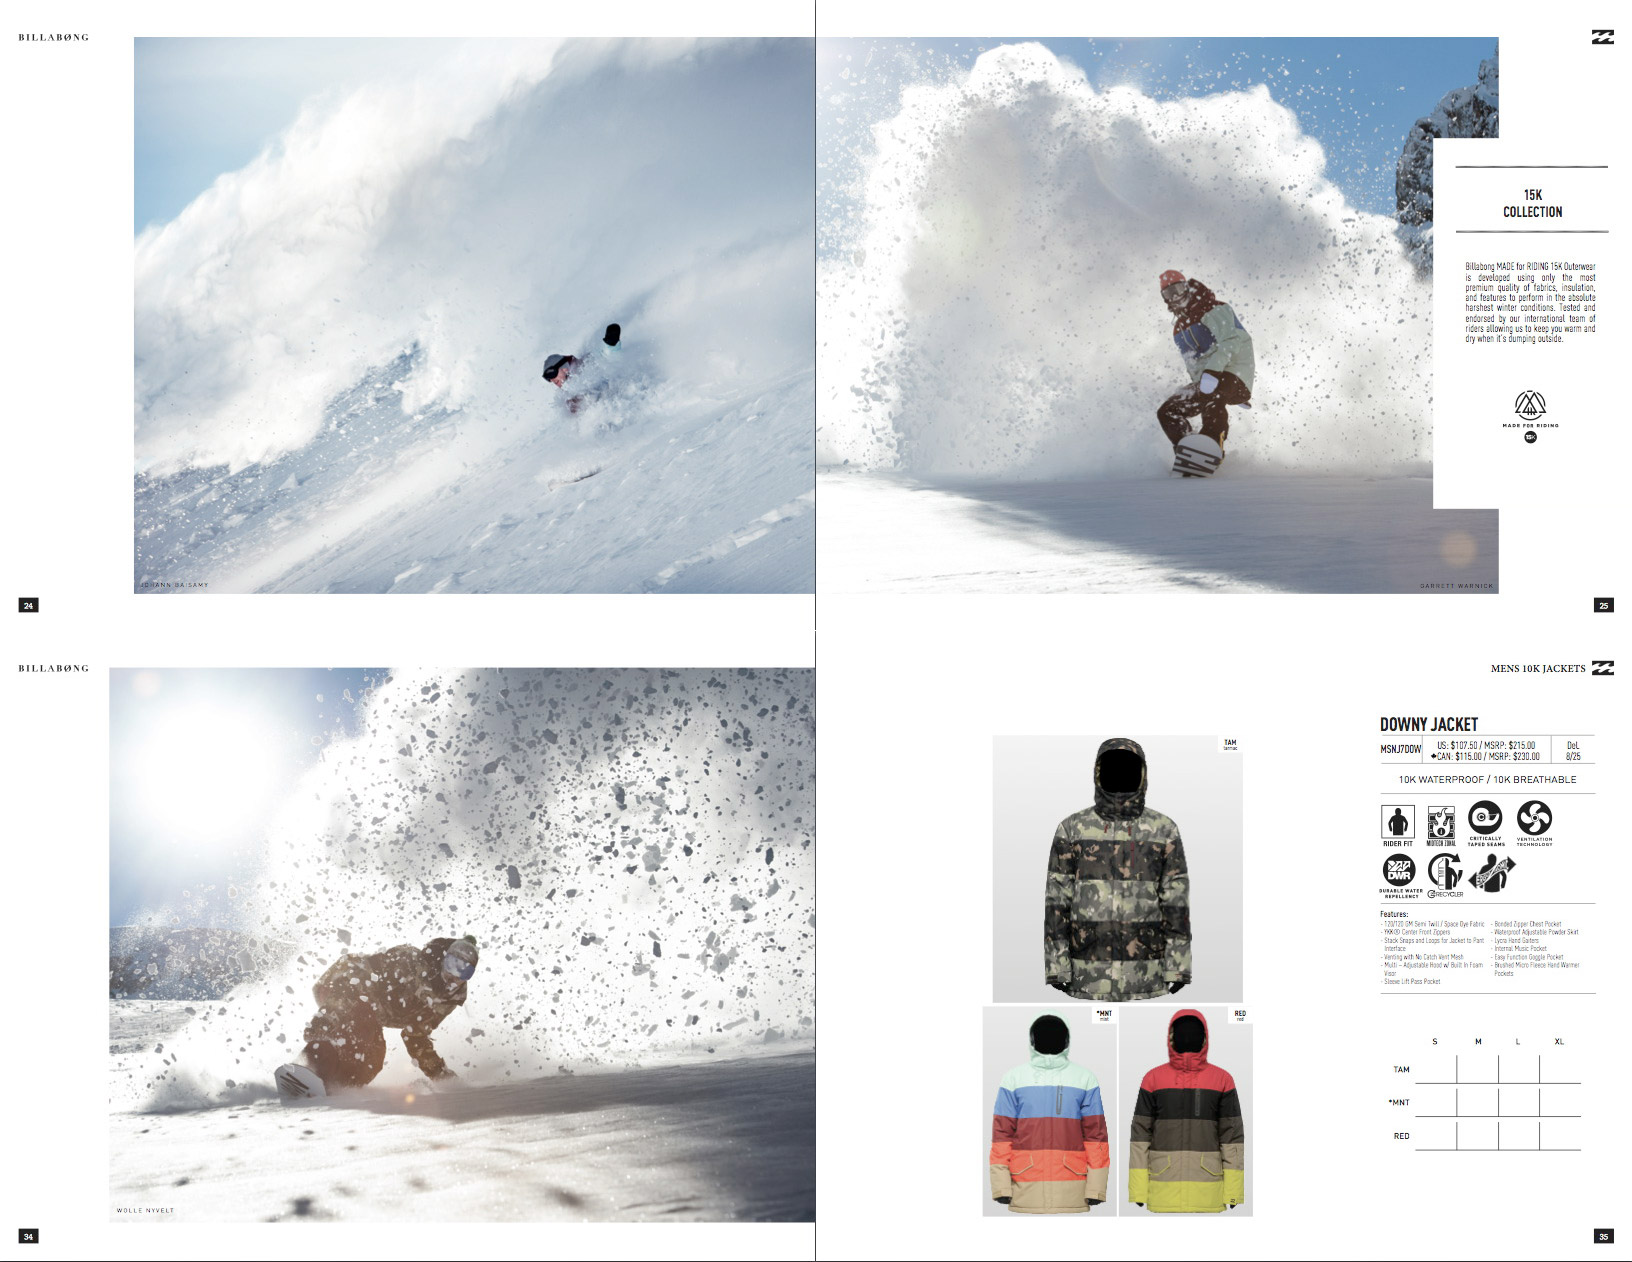 Billabong_USA_Christian_Brecheis_01_Wolle_Nyvelt_4pagesweb